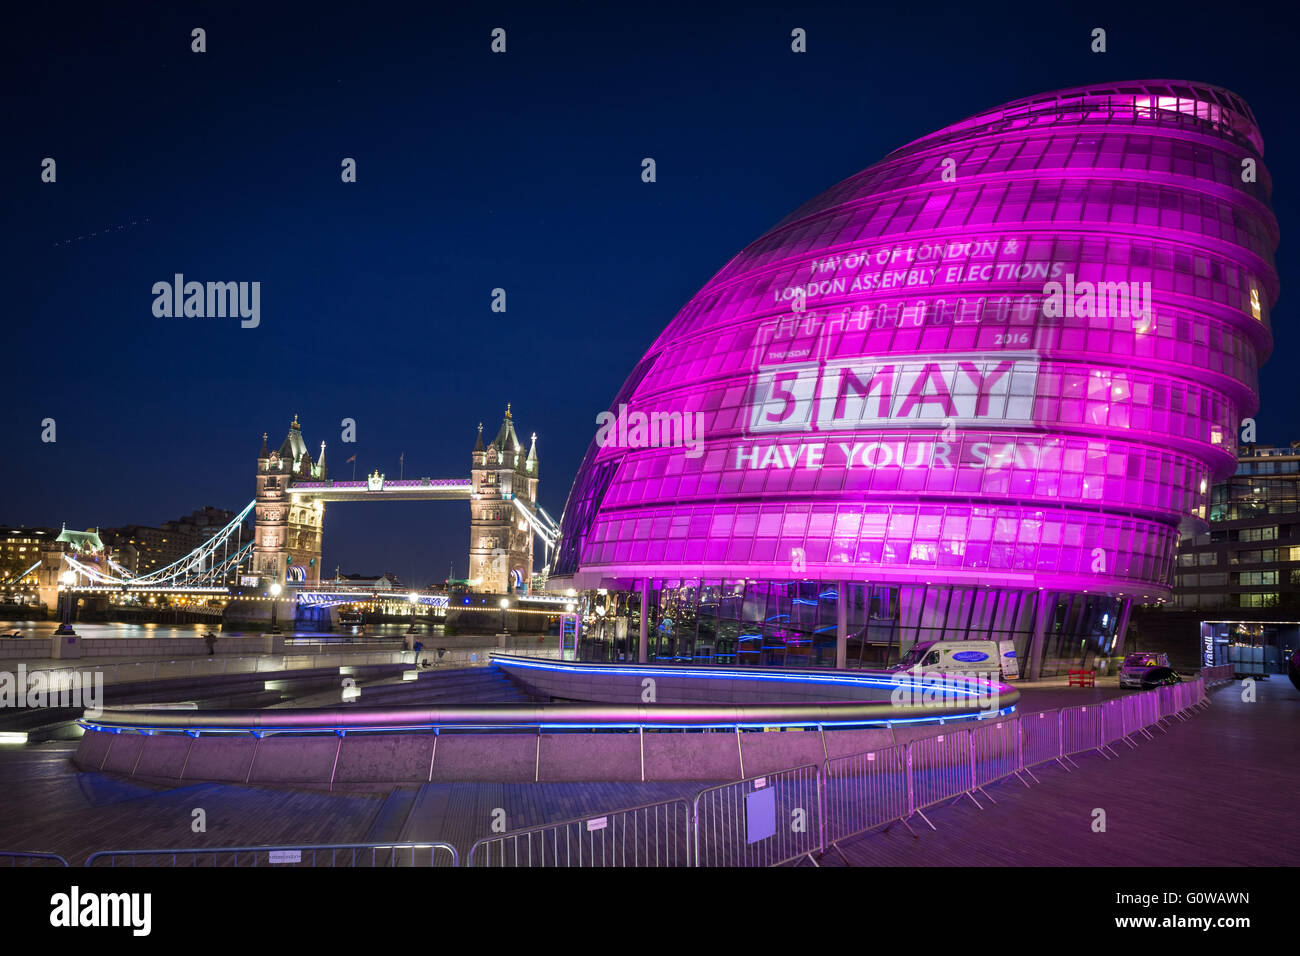 London, UK. 4th May, 2016. Mayoral Election Illumination: London's City Hall goes pink on the eve of Polling Day - Stock Image